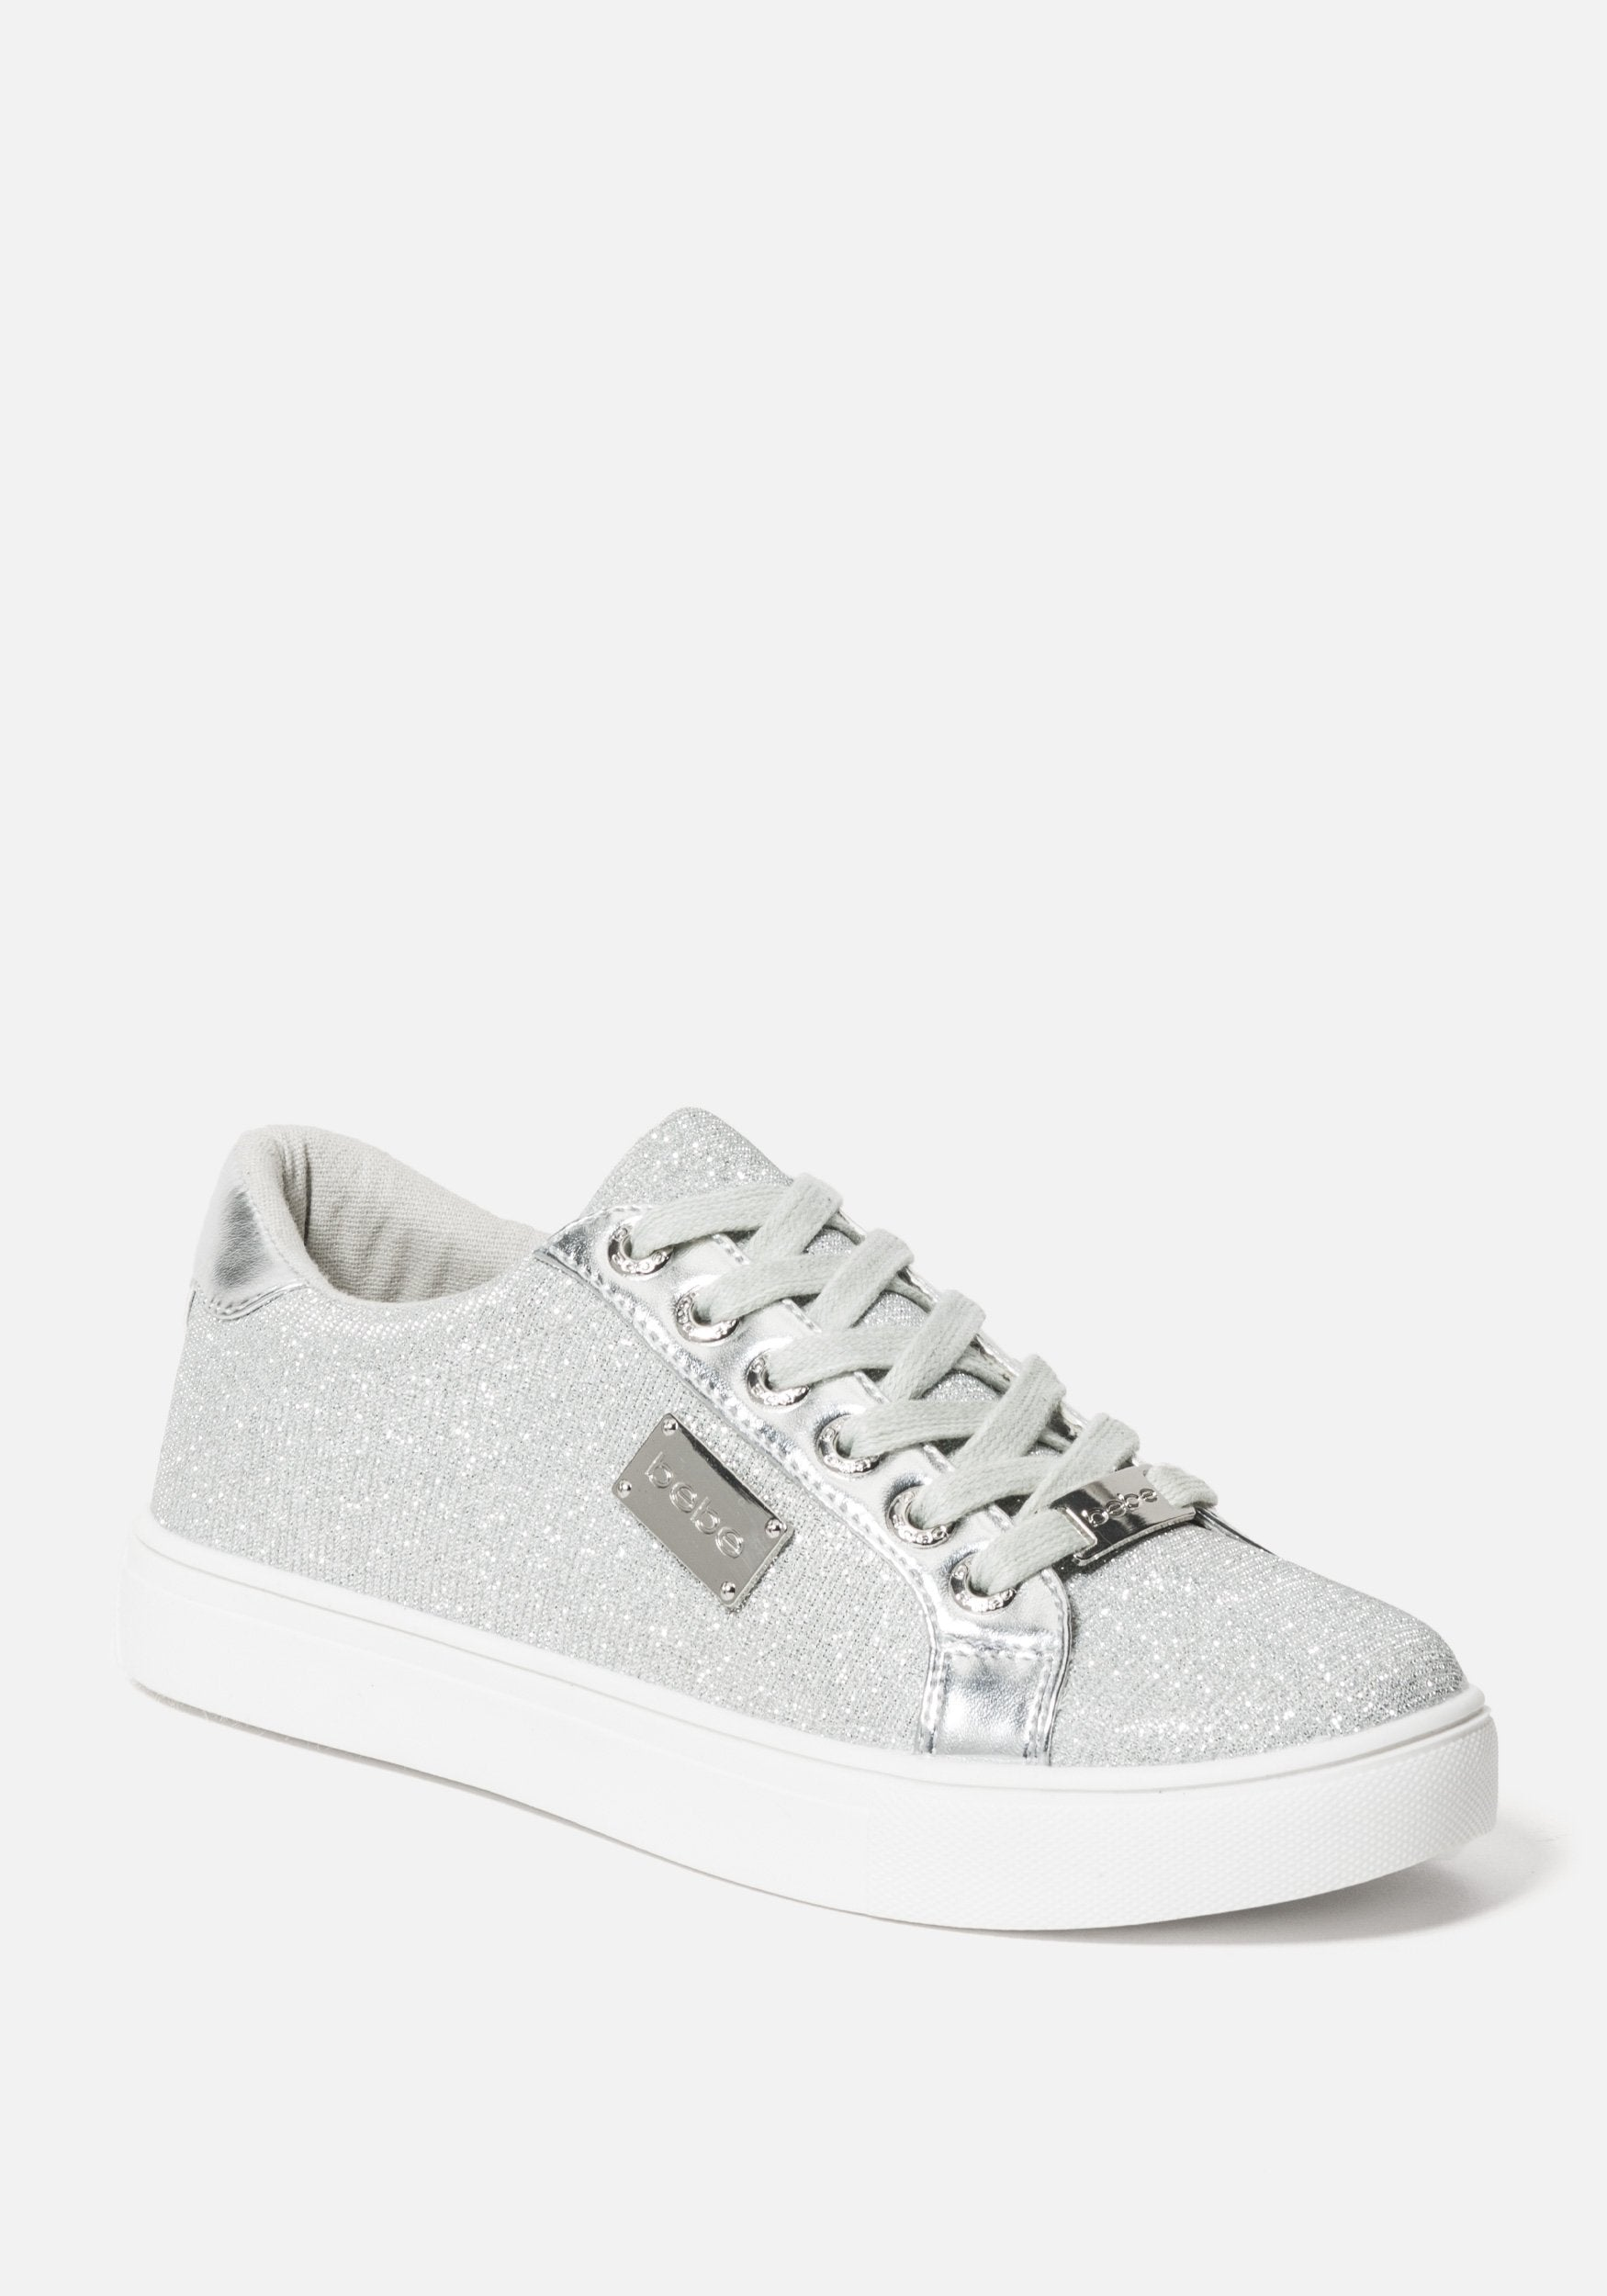 Bebe Women's Calais Platform Sneakers, Size 6 in SILVER MESH Synthetic